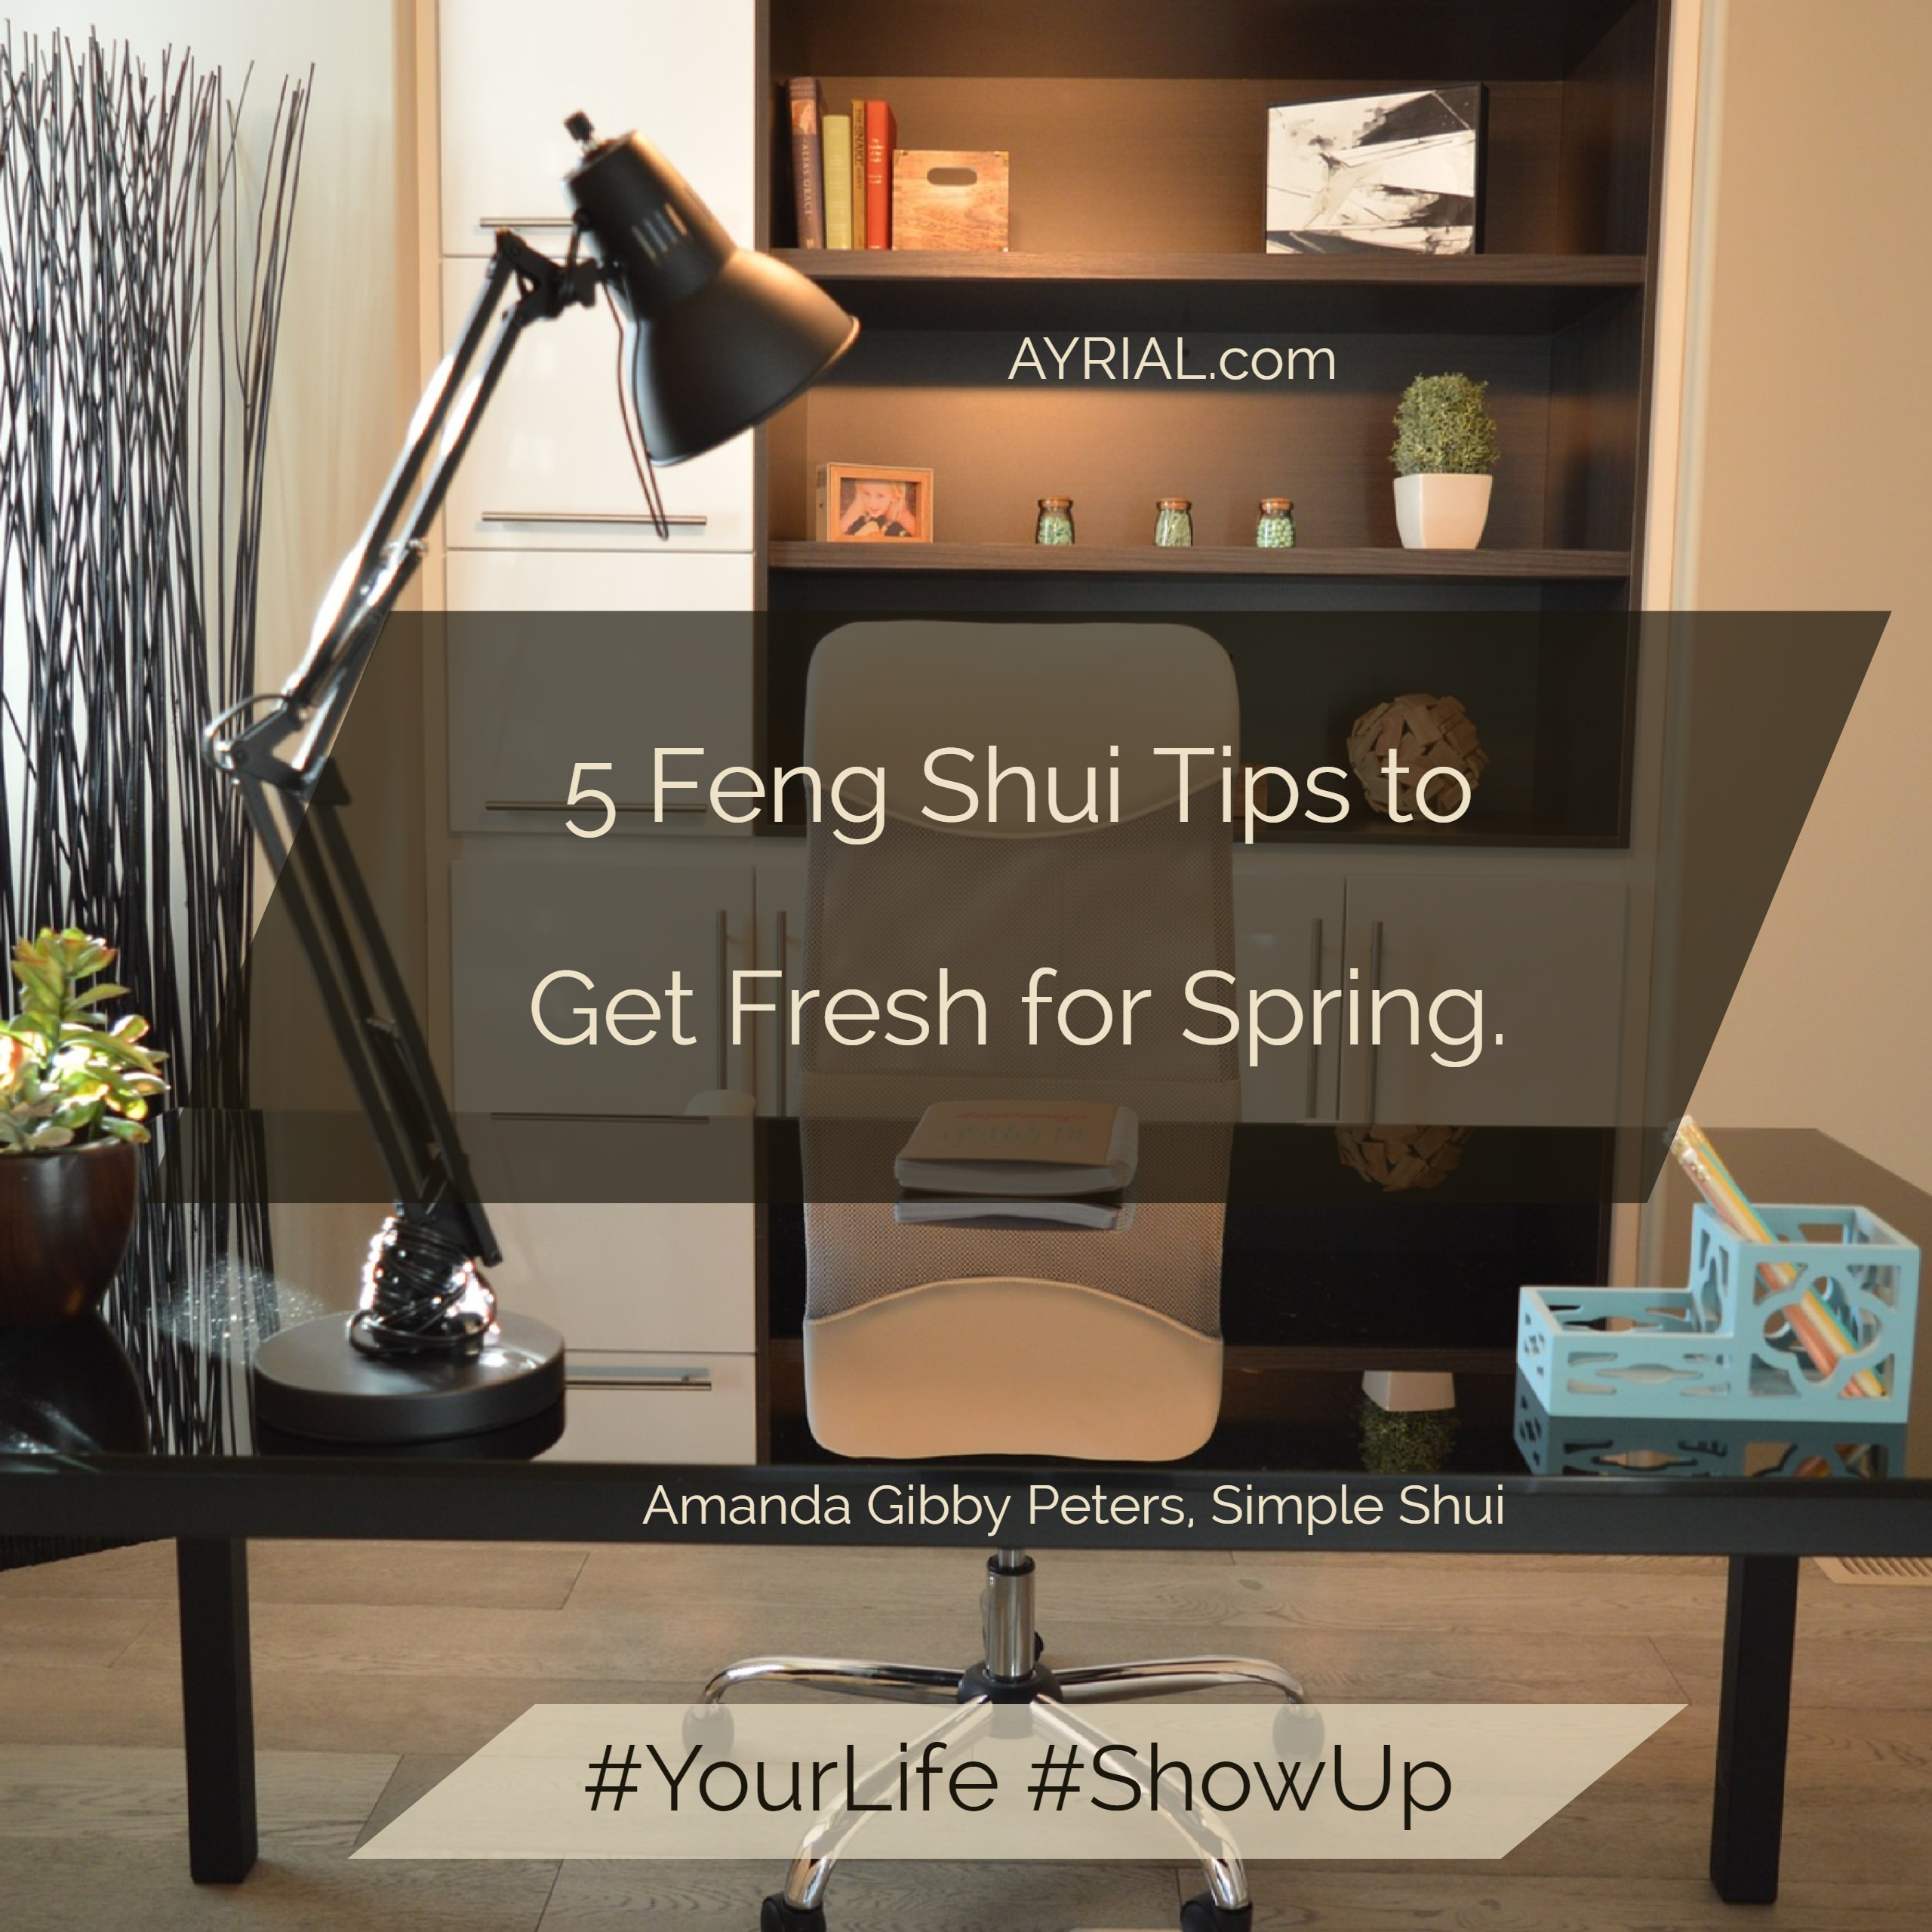 A Few Feng Shui Tips For Home and Work